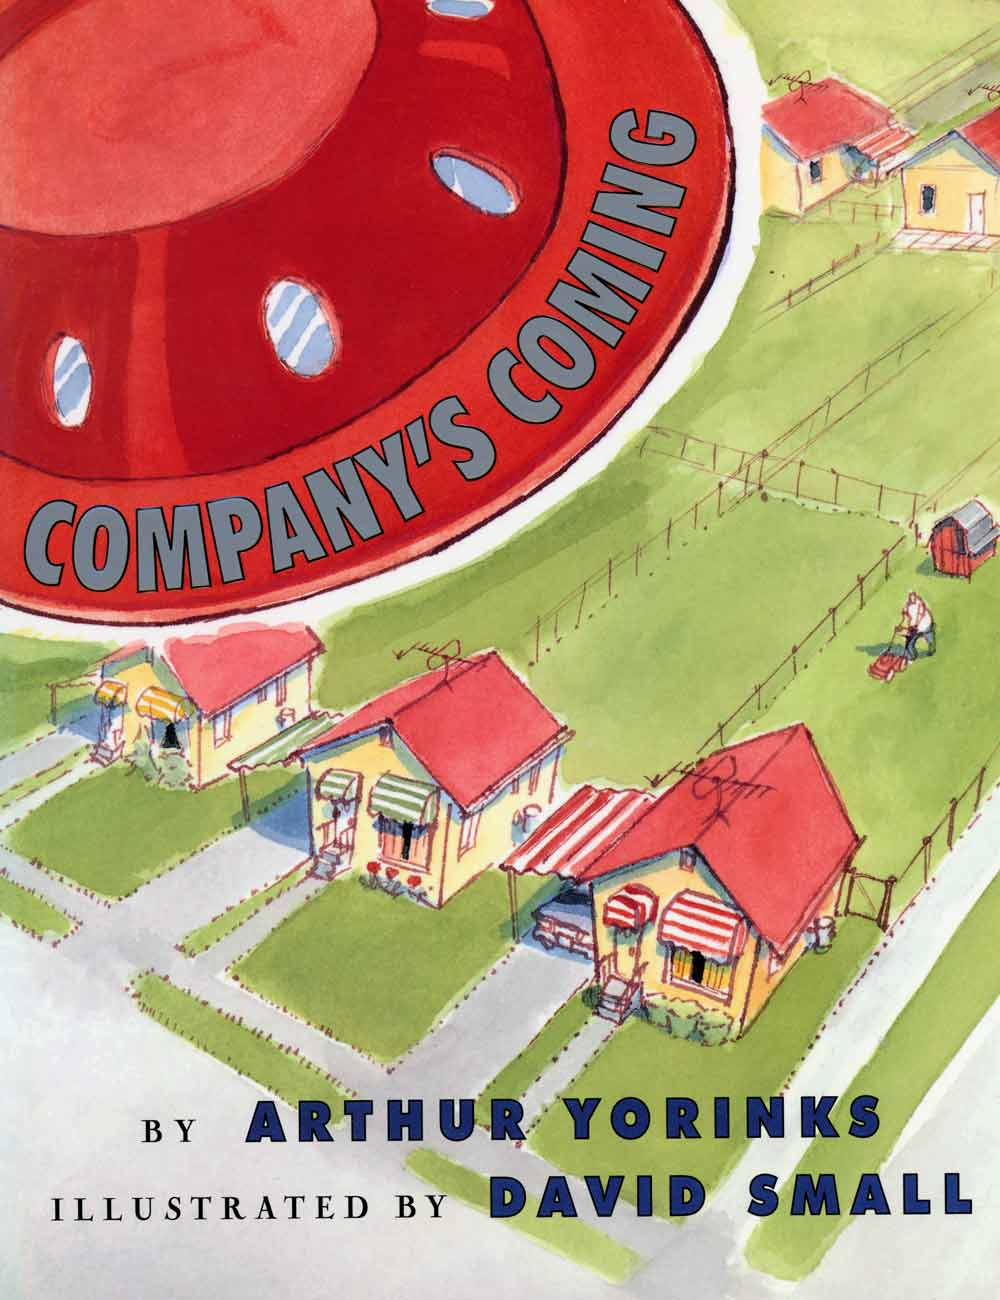 2000_yorinks_portrait_company'scoming.jpg